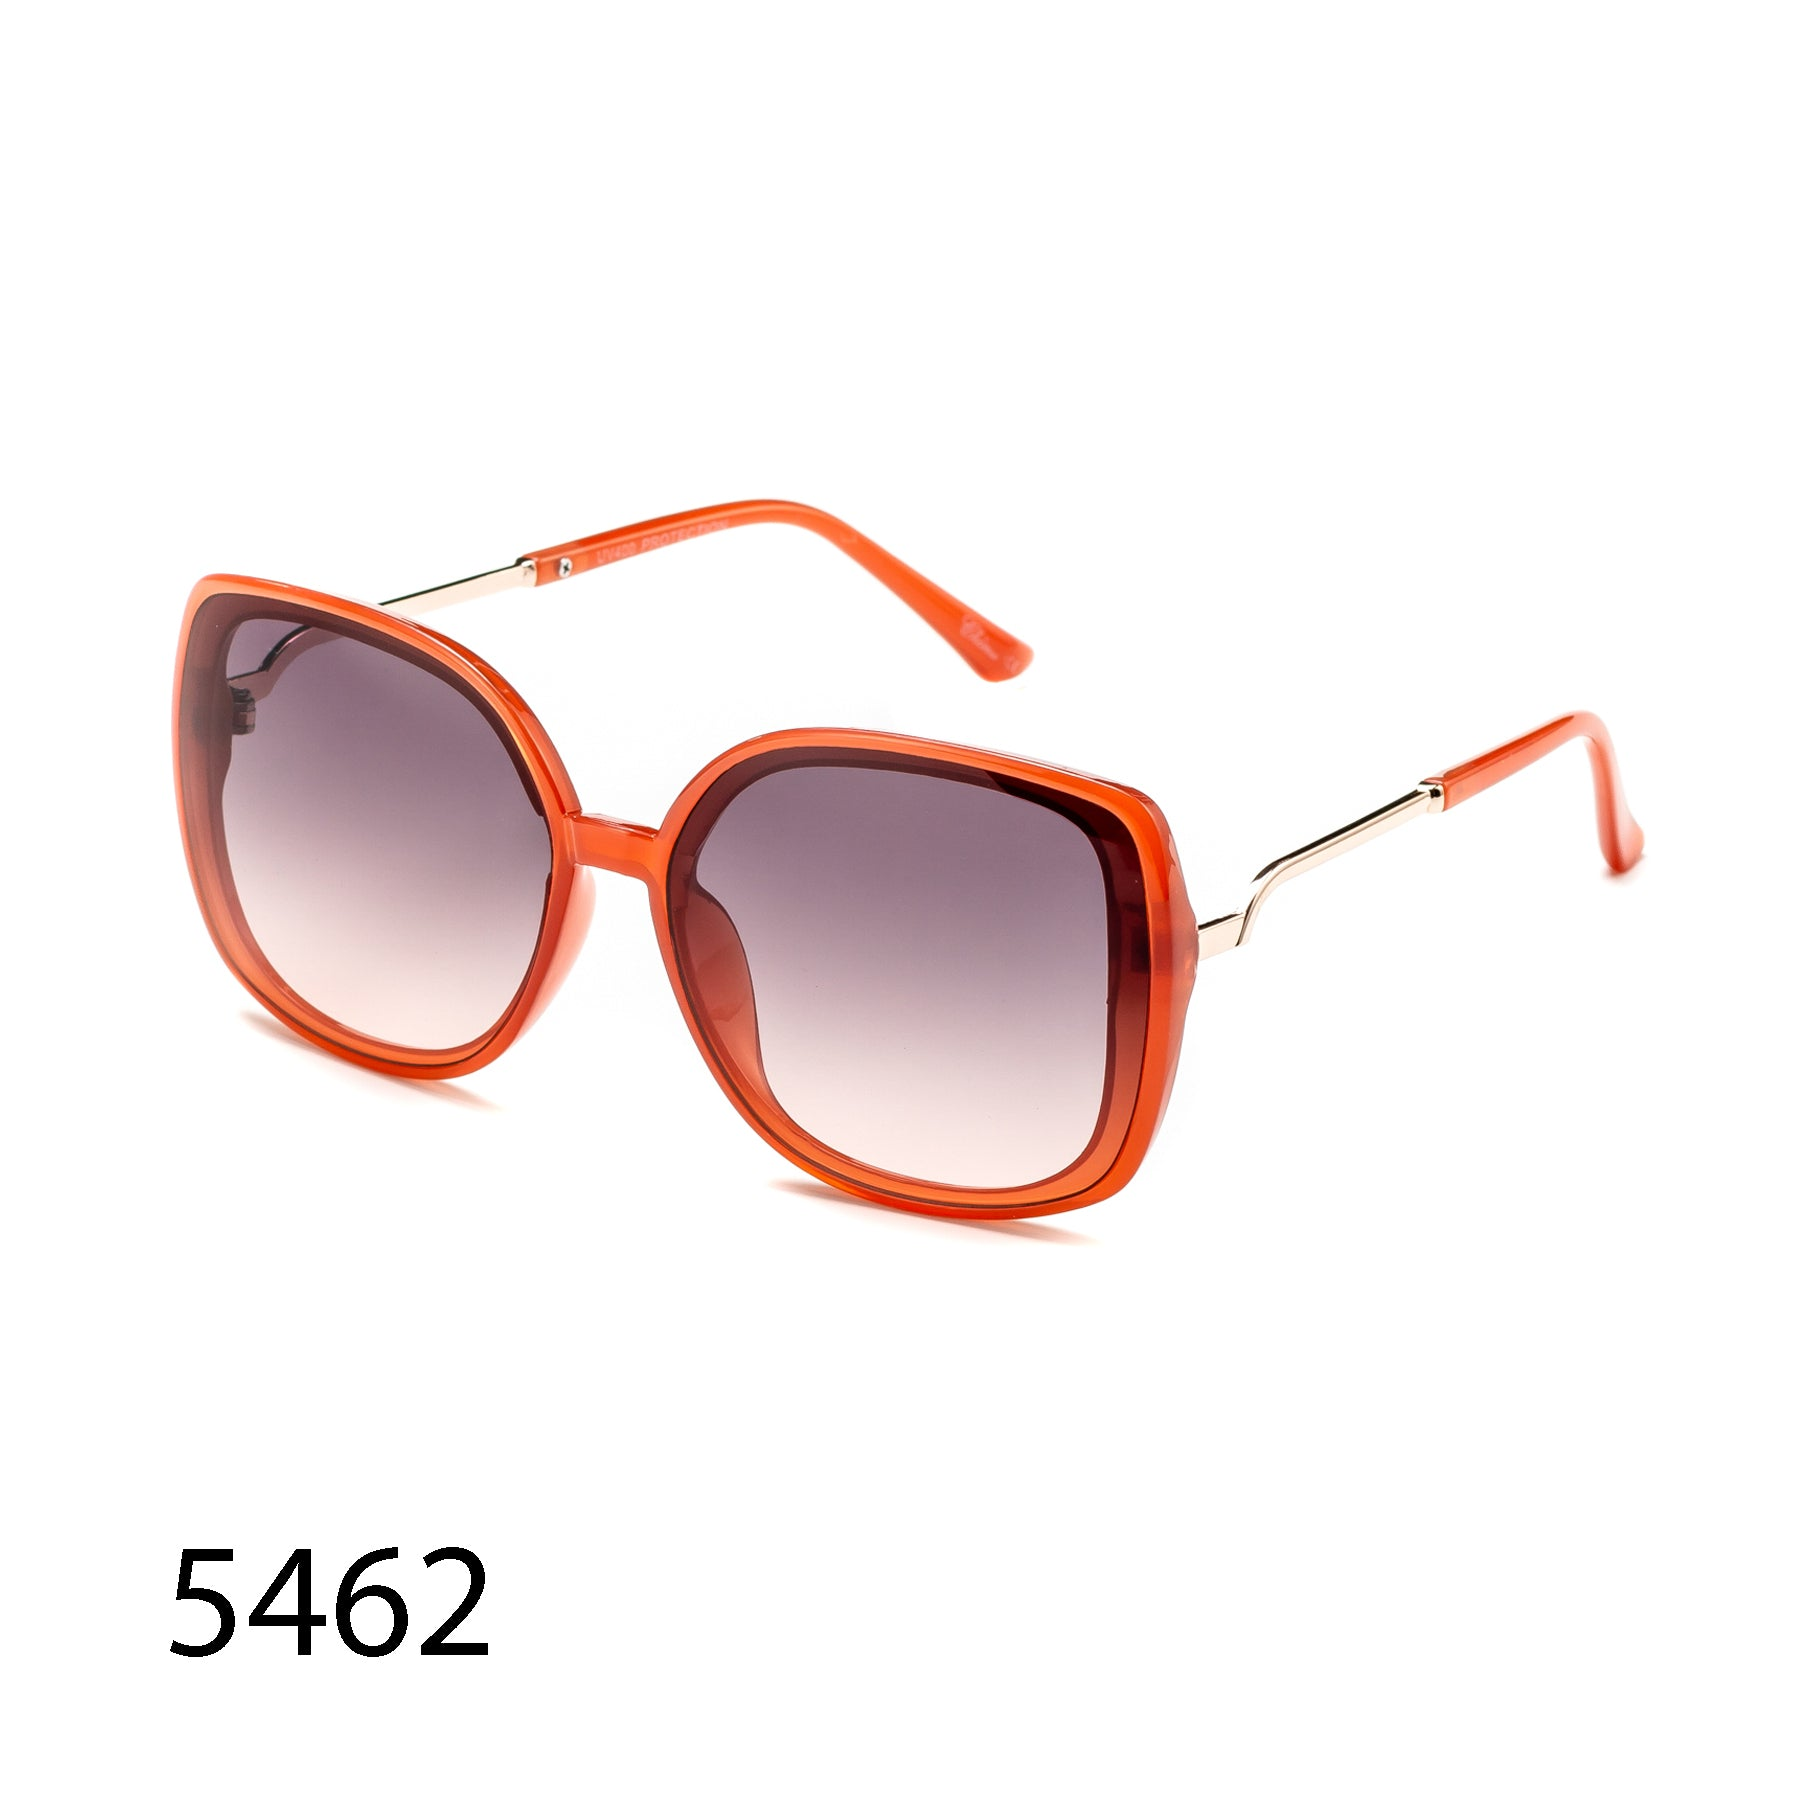 Pack Of 12 Bright Coloful Oversized Shades With Zigzag Temples Wholes Creative Group